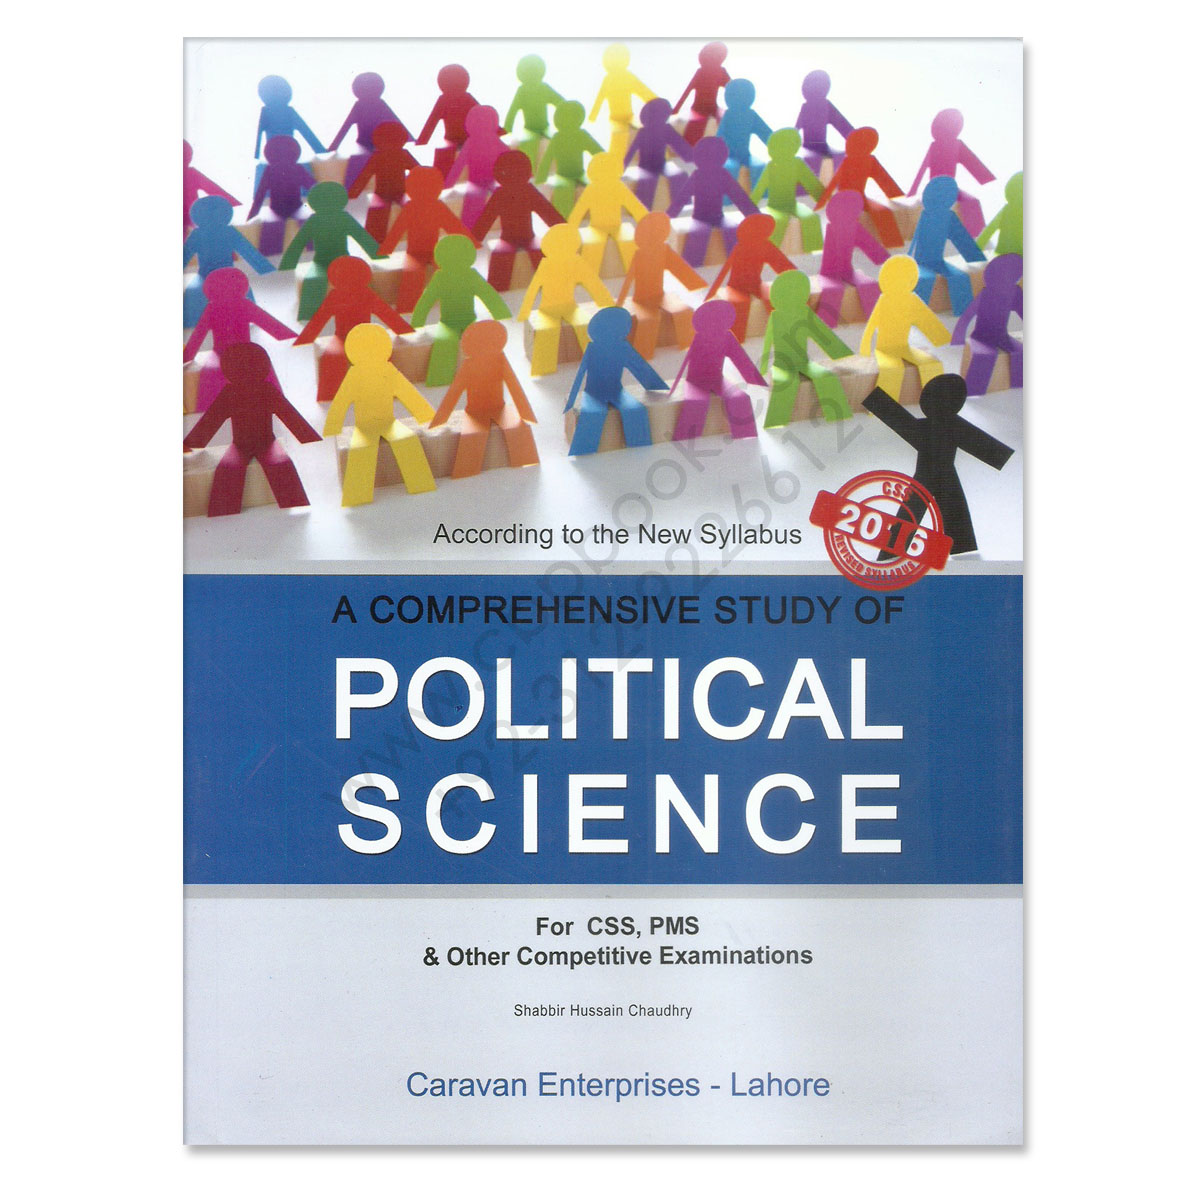 political science papers css Political science 2000 2001 2002 2003 2004 2005 2006 2007 2008 2009 2010  2011 2012 201 3 2014 2015 syllabus revised 2016 2017.